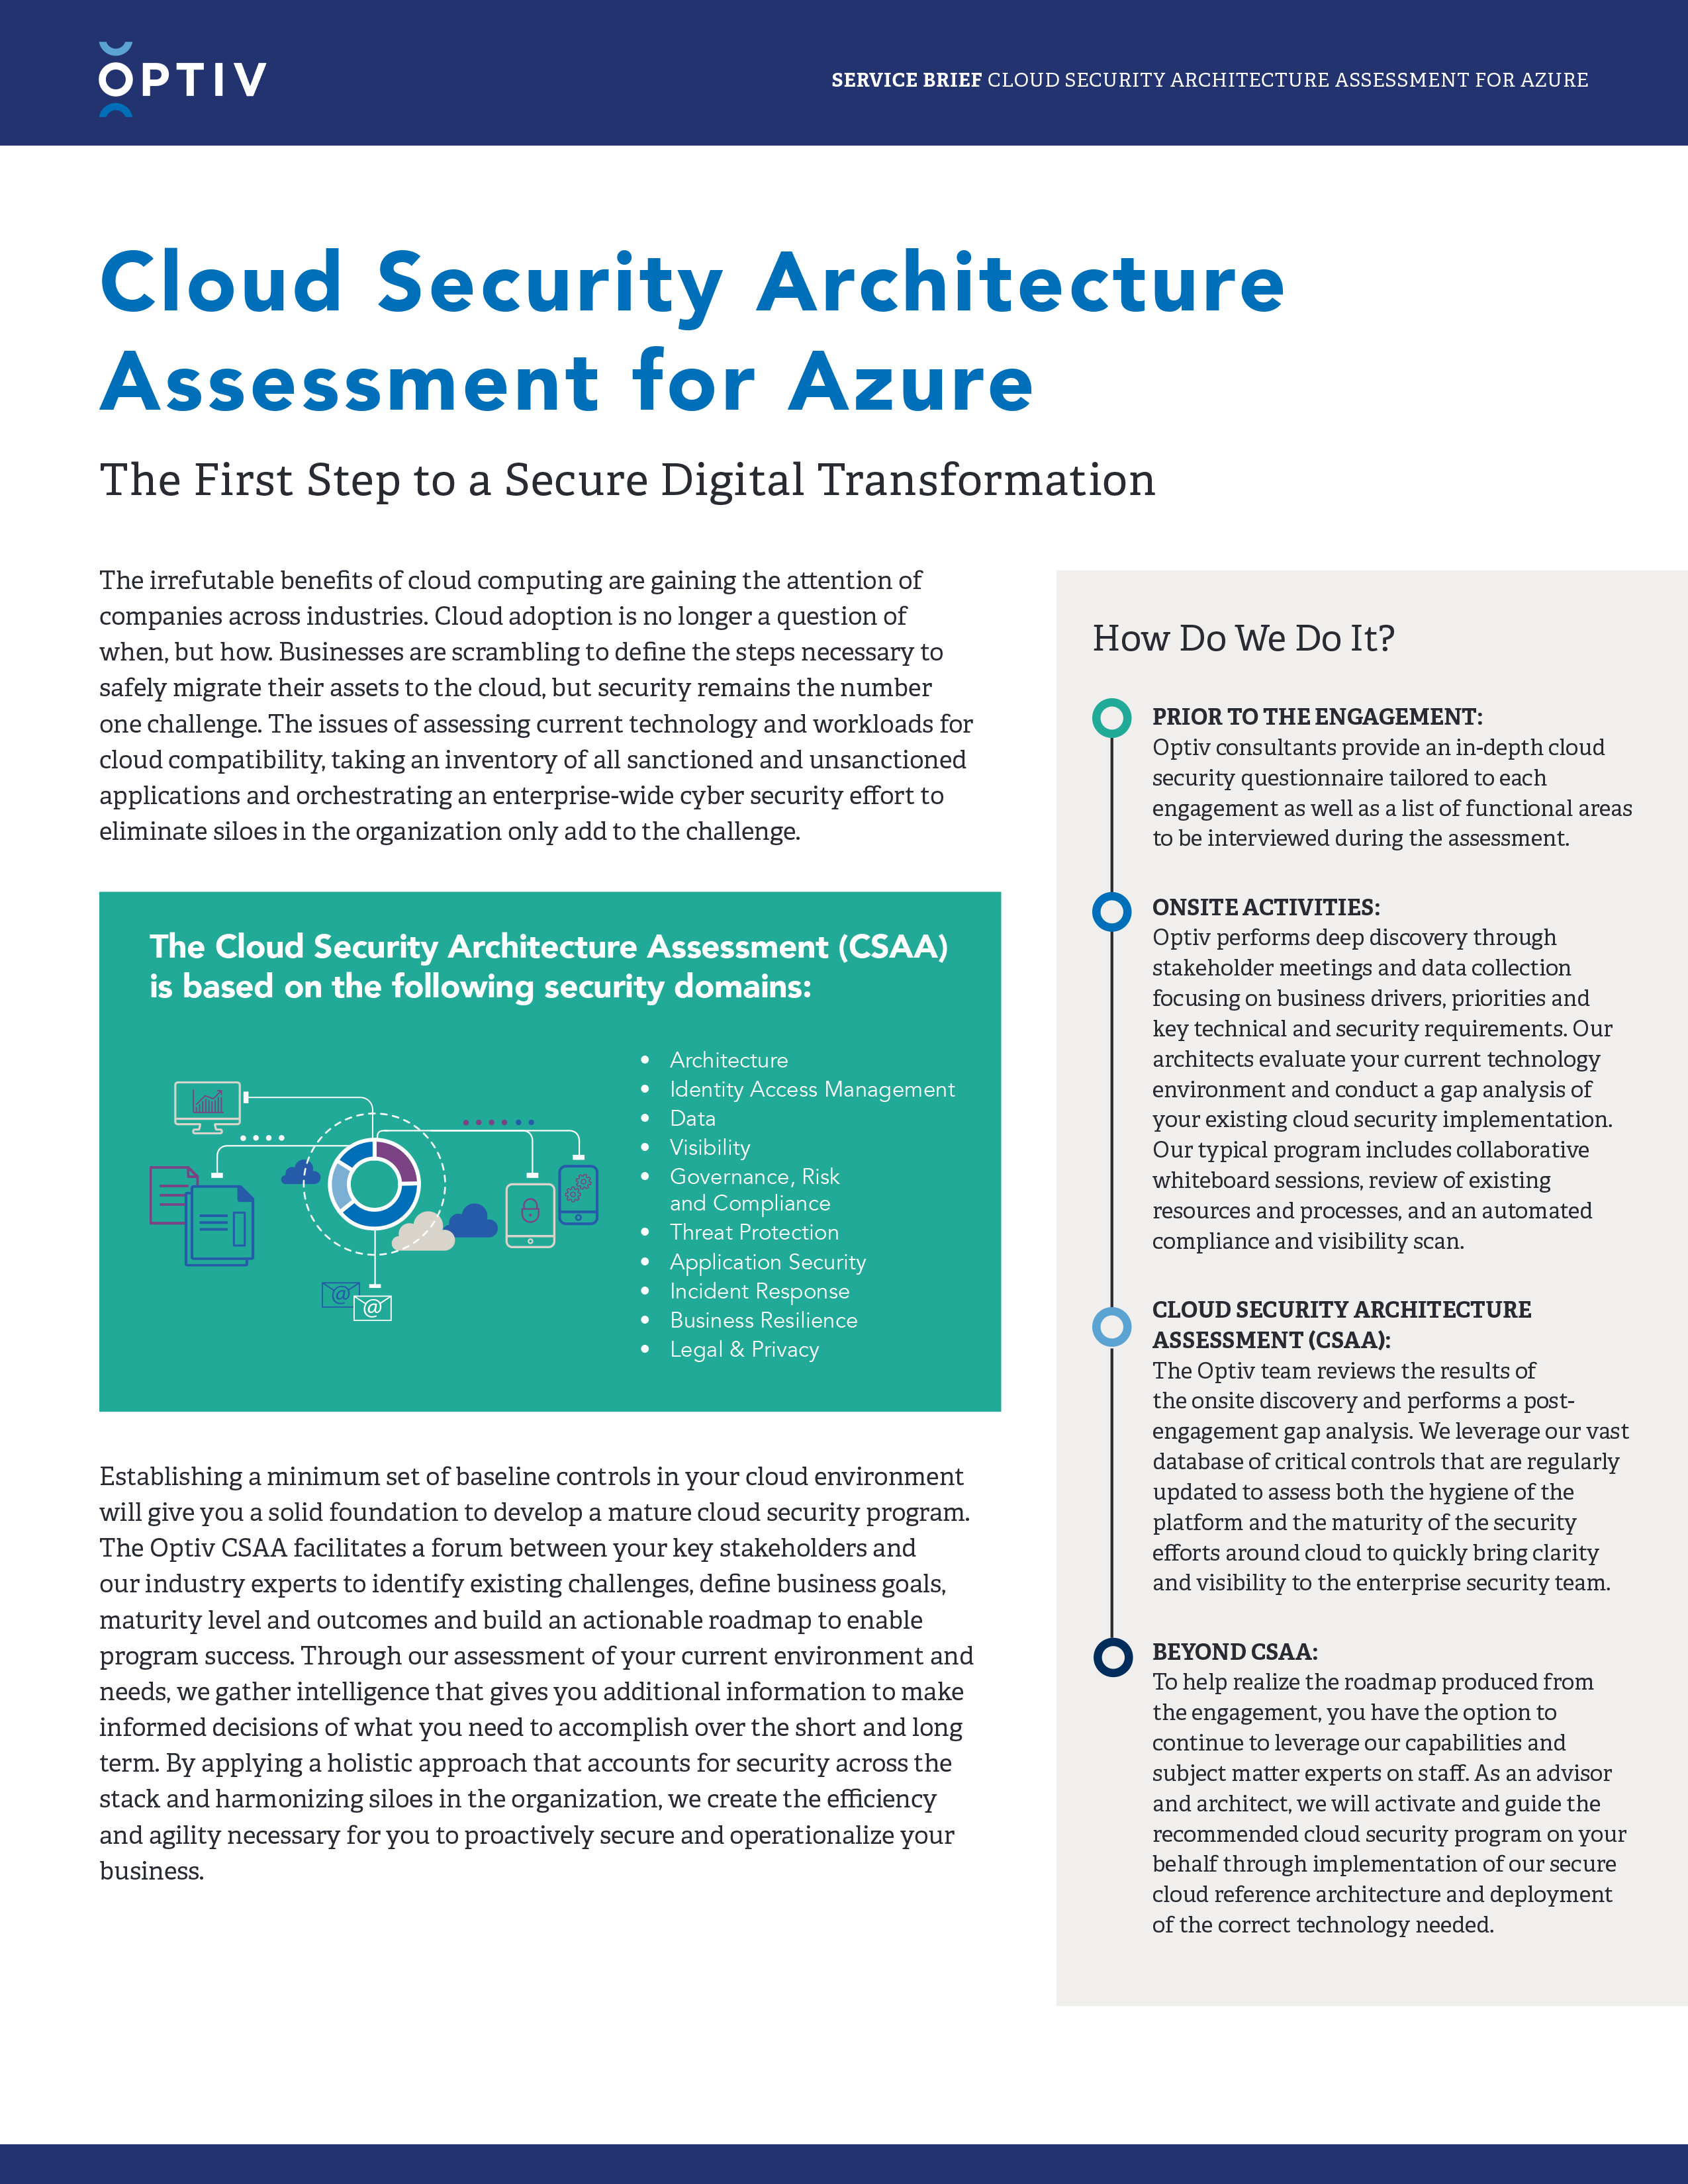 Cloud_Security_Architecture__Assessment_Service_Brief_Azure_v2-1